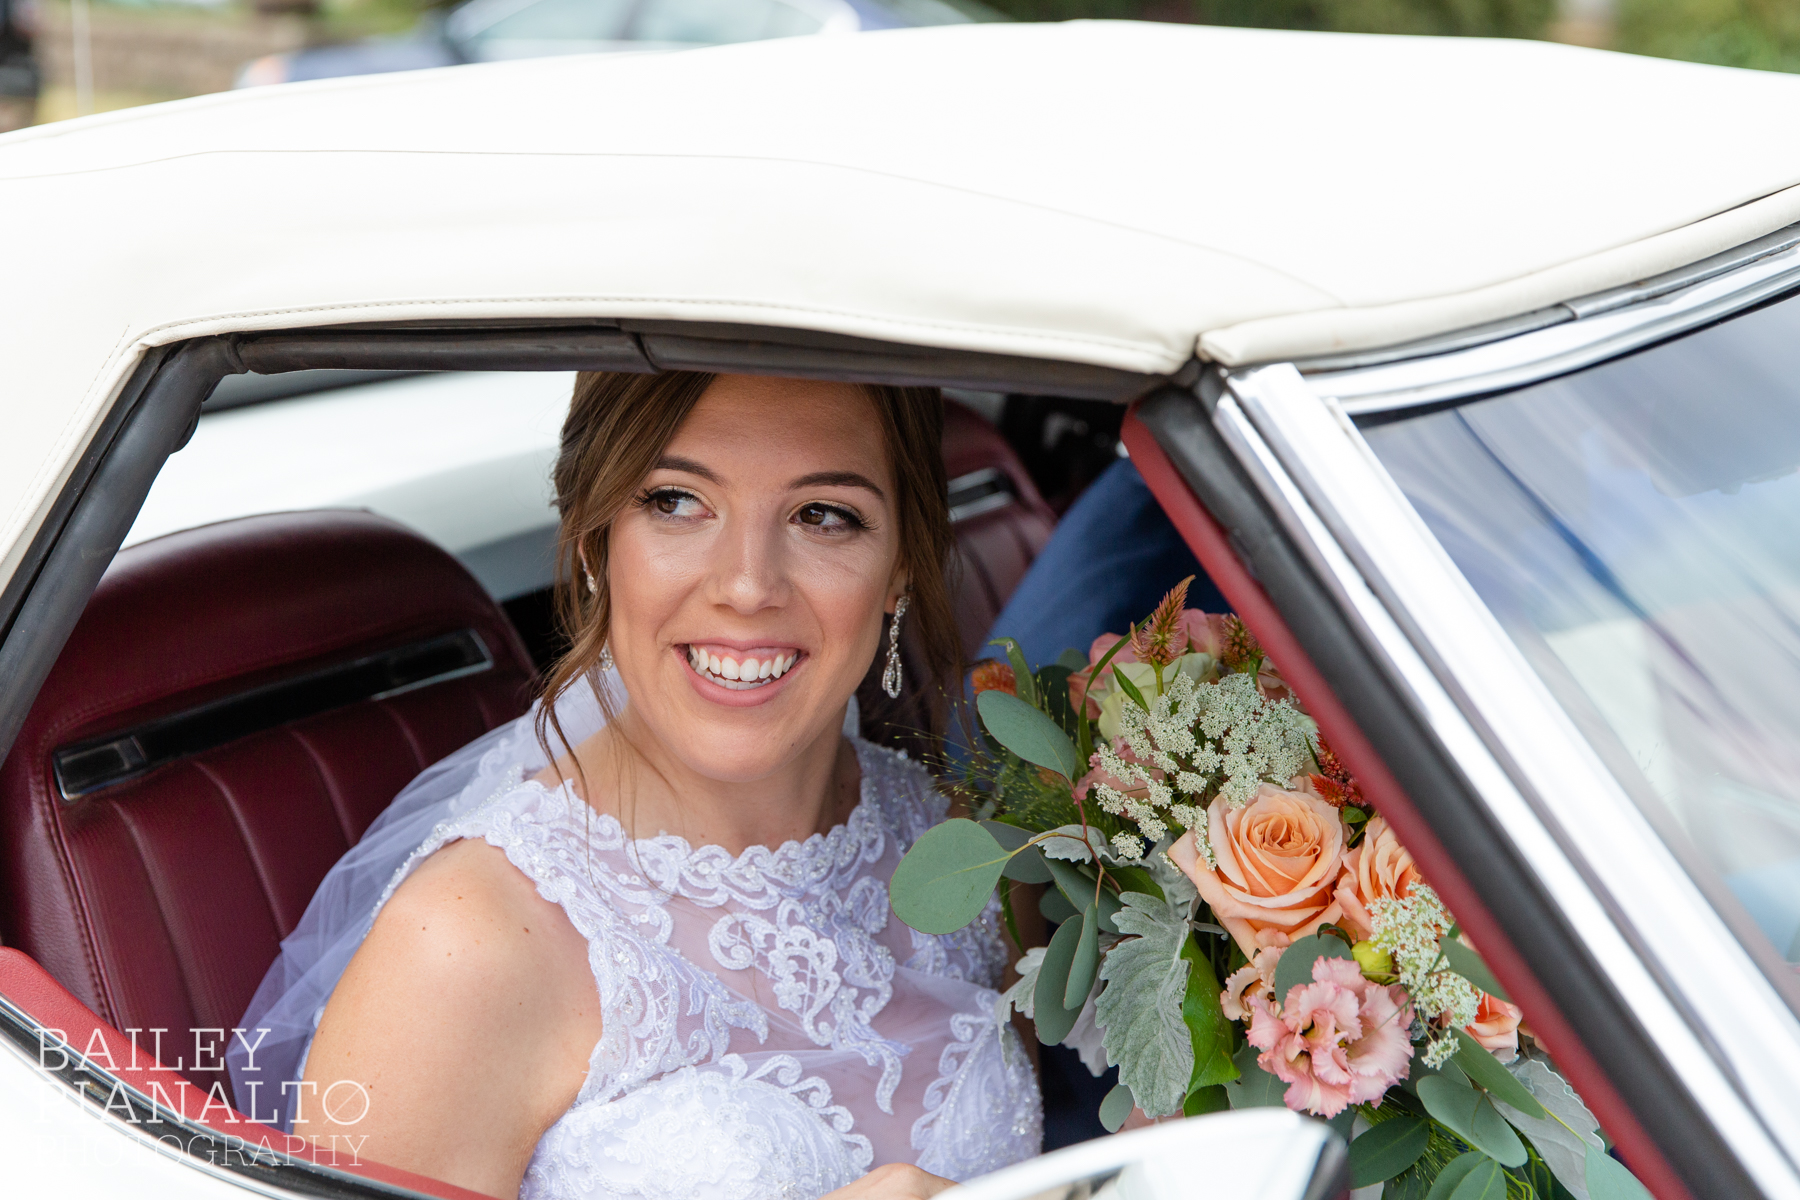 Peach & navy summer wedding with a vintage 1975 Corvette convertible, Azazie and Men's Wearhouse in Hutchinson, Kansas